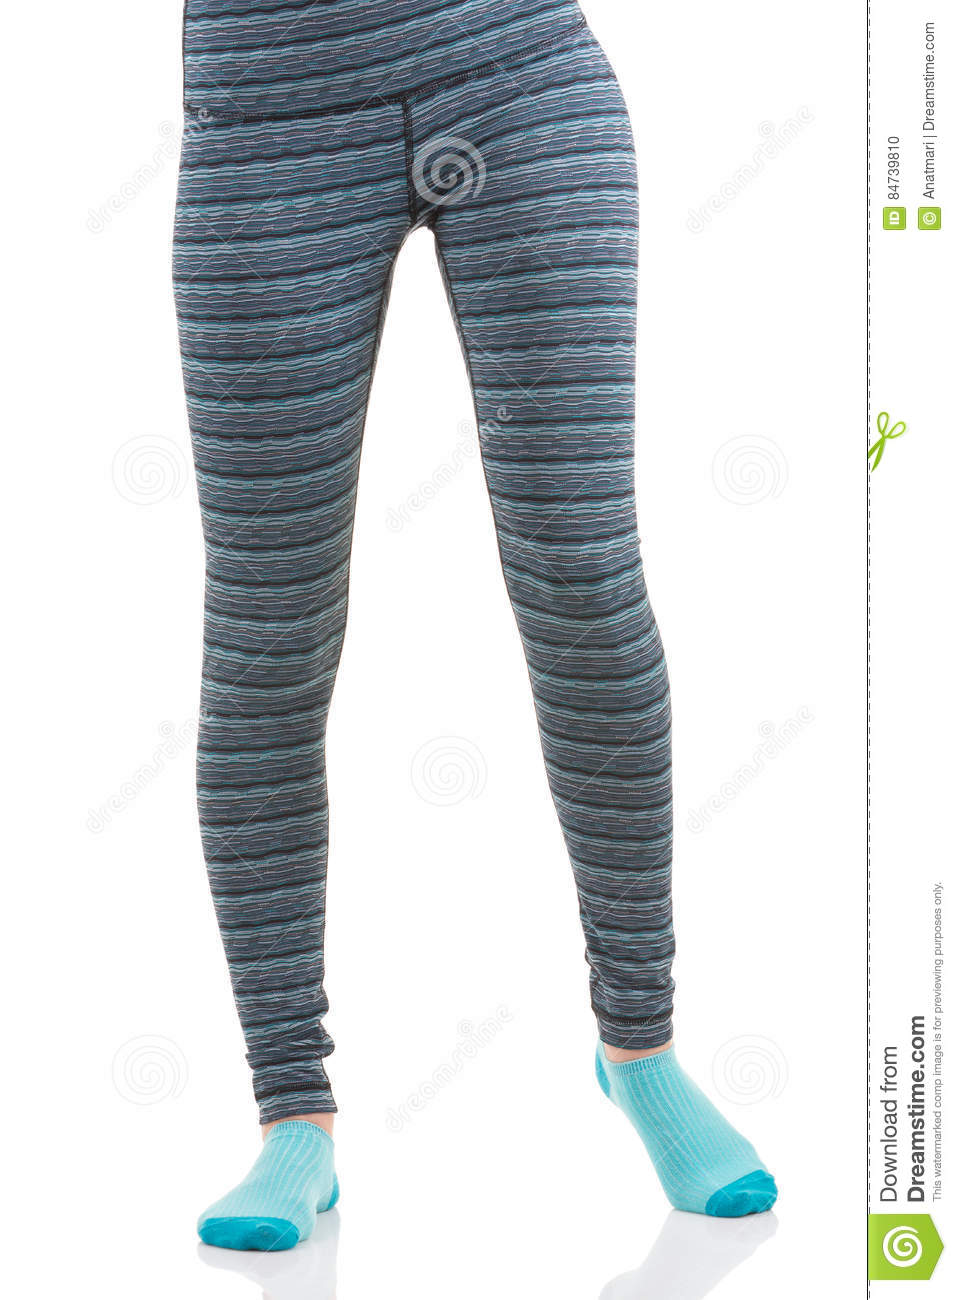 ff56840ccf282 Front view of fit woman legs in colourful striped sports leggings and blue  socks on white isolated background